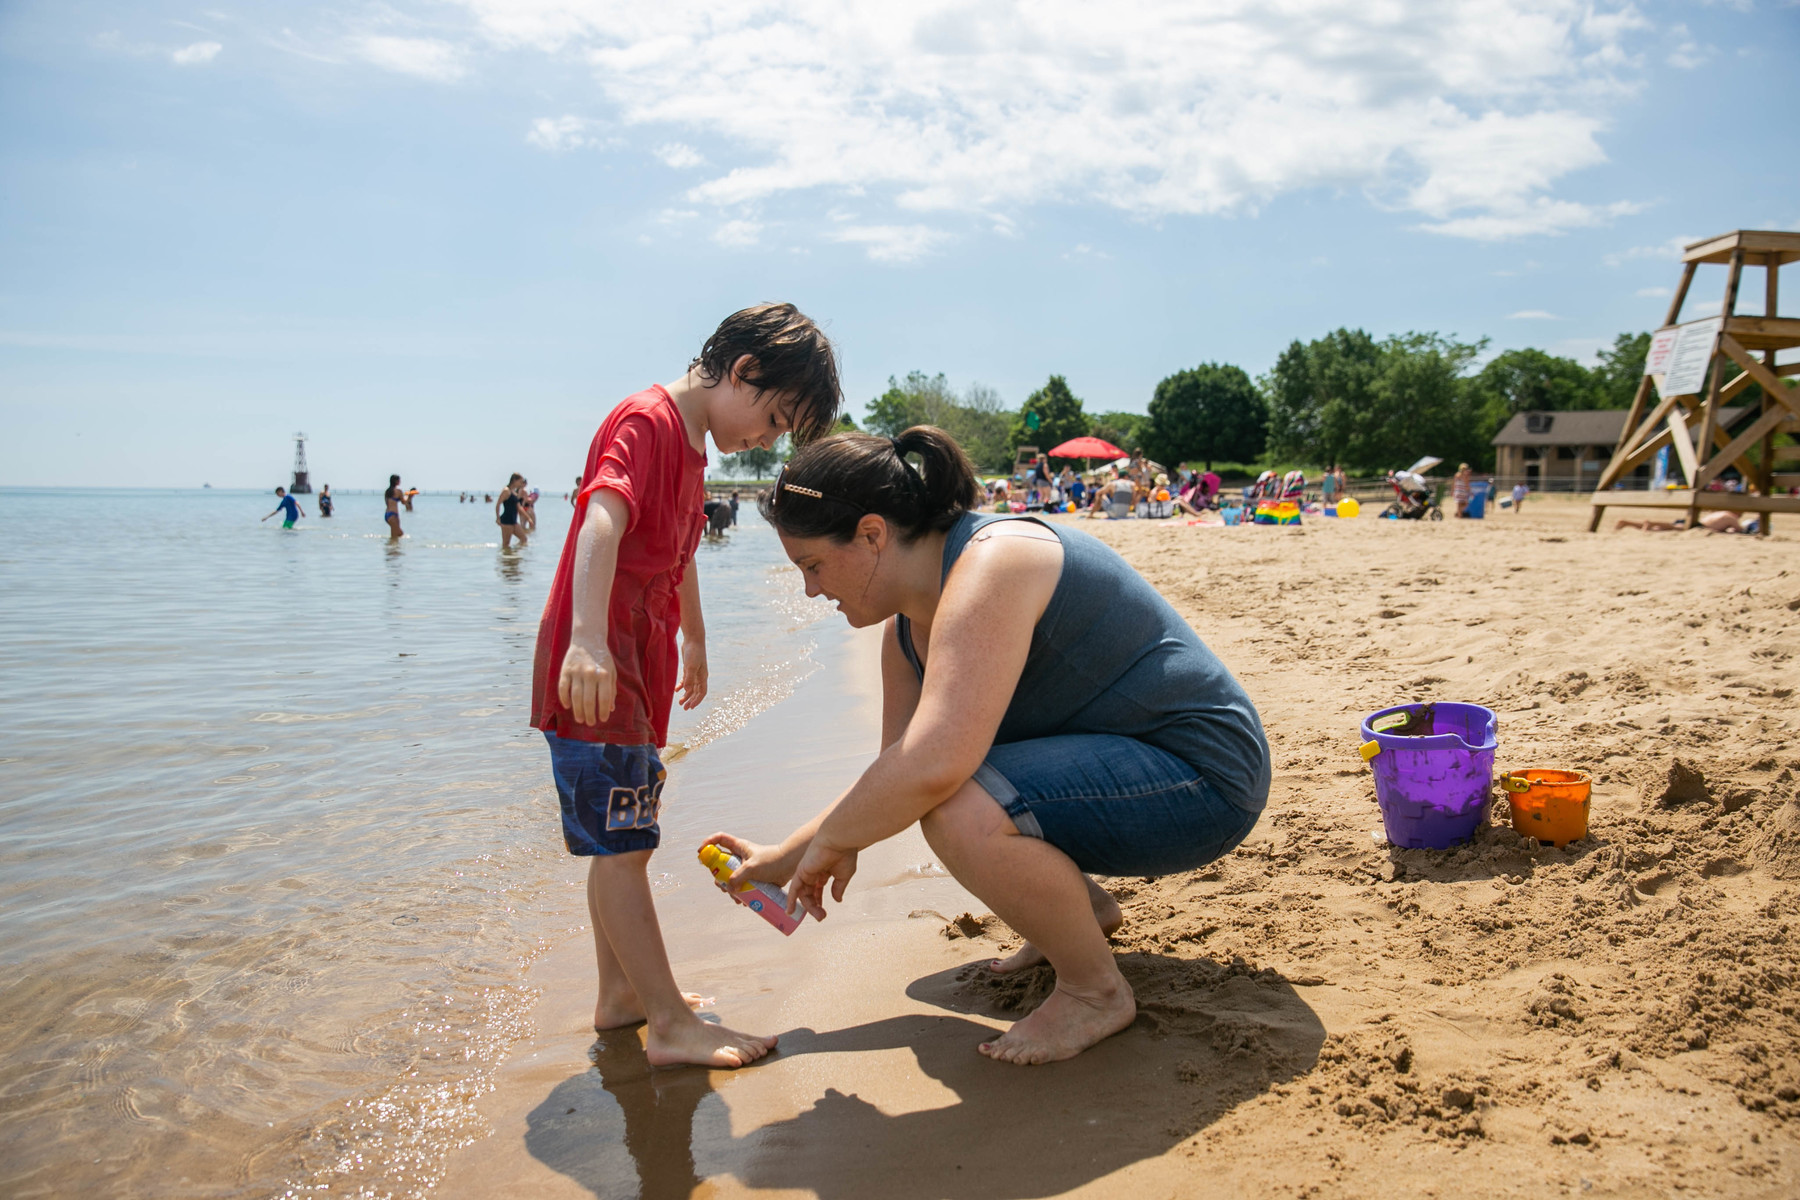 Jamie Prahl, 37, puts sunscreen on her son Wesley at Foster Beach.